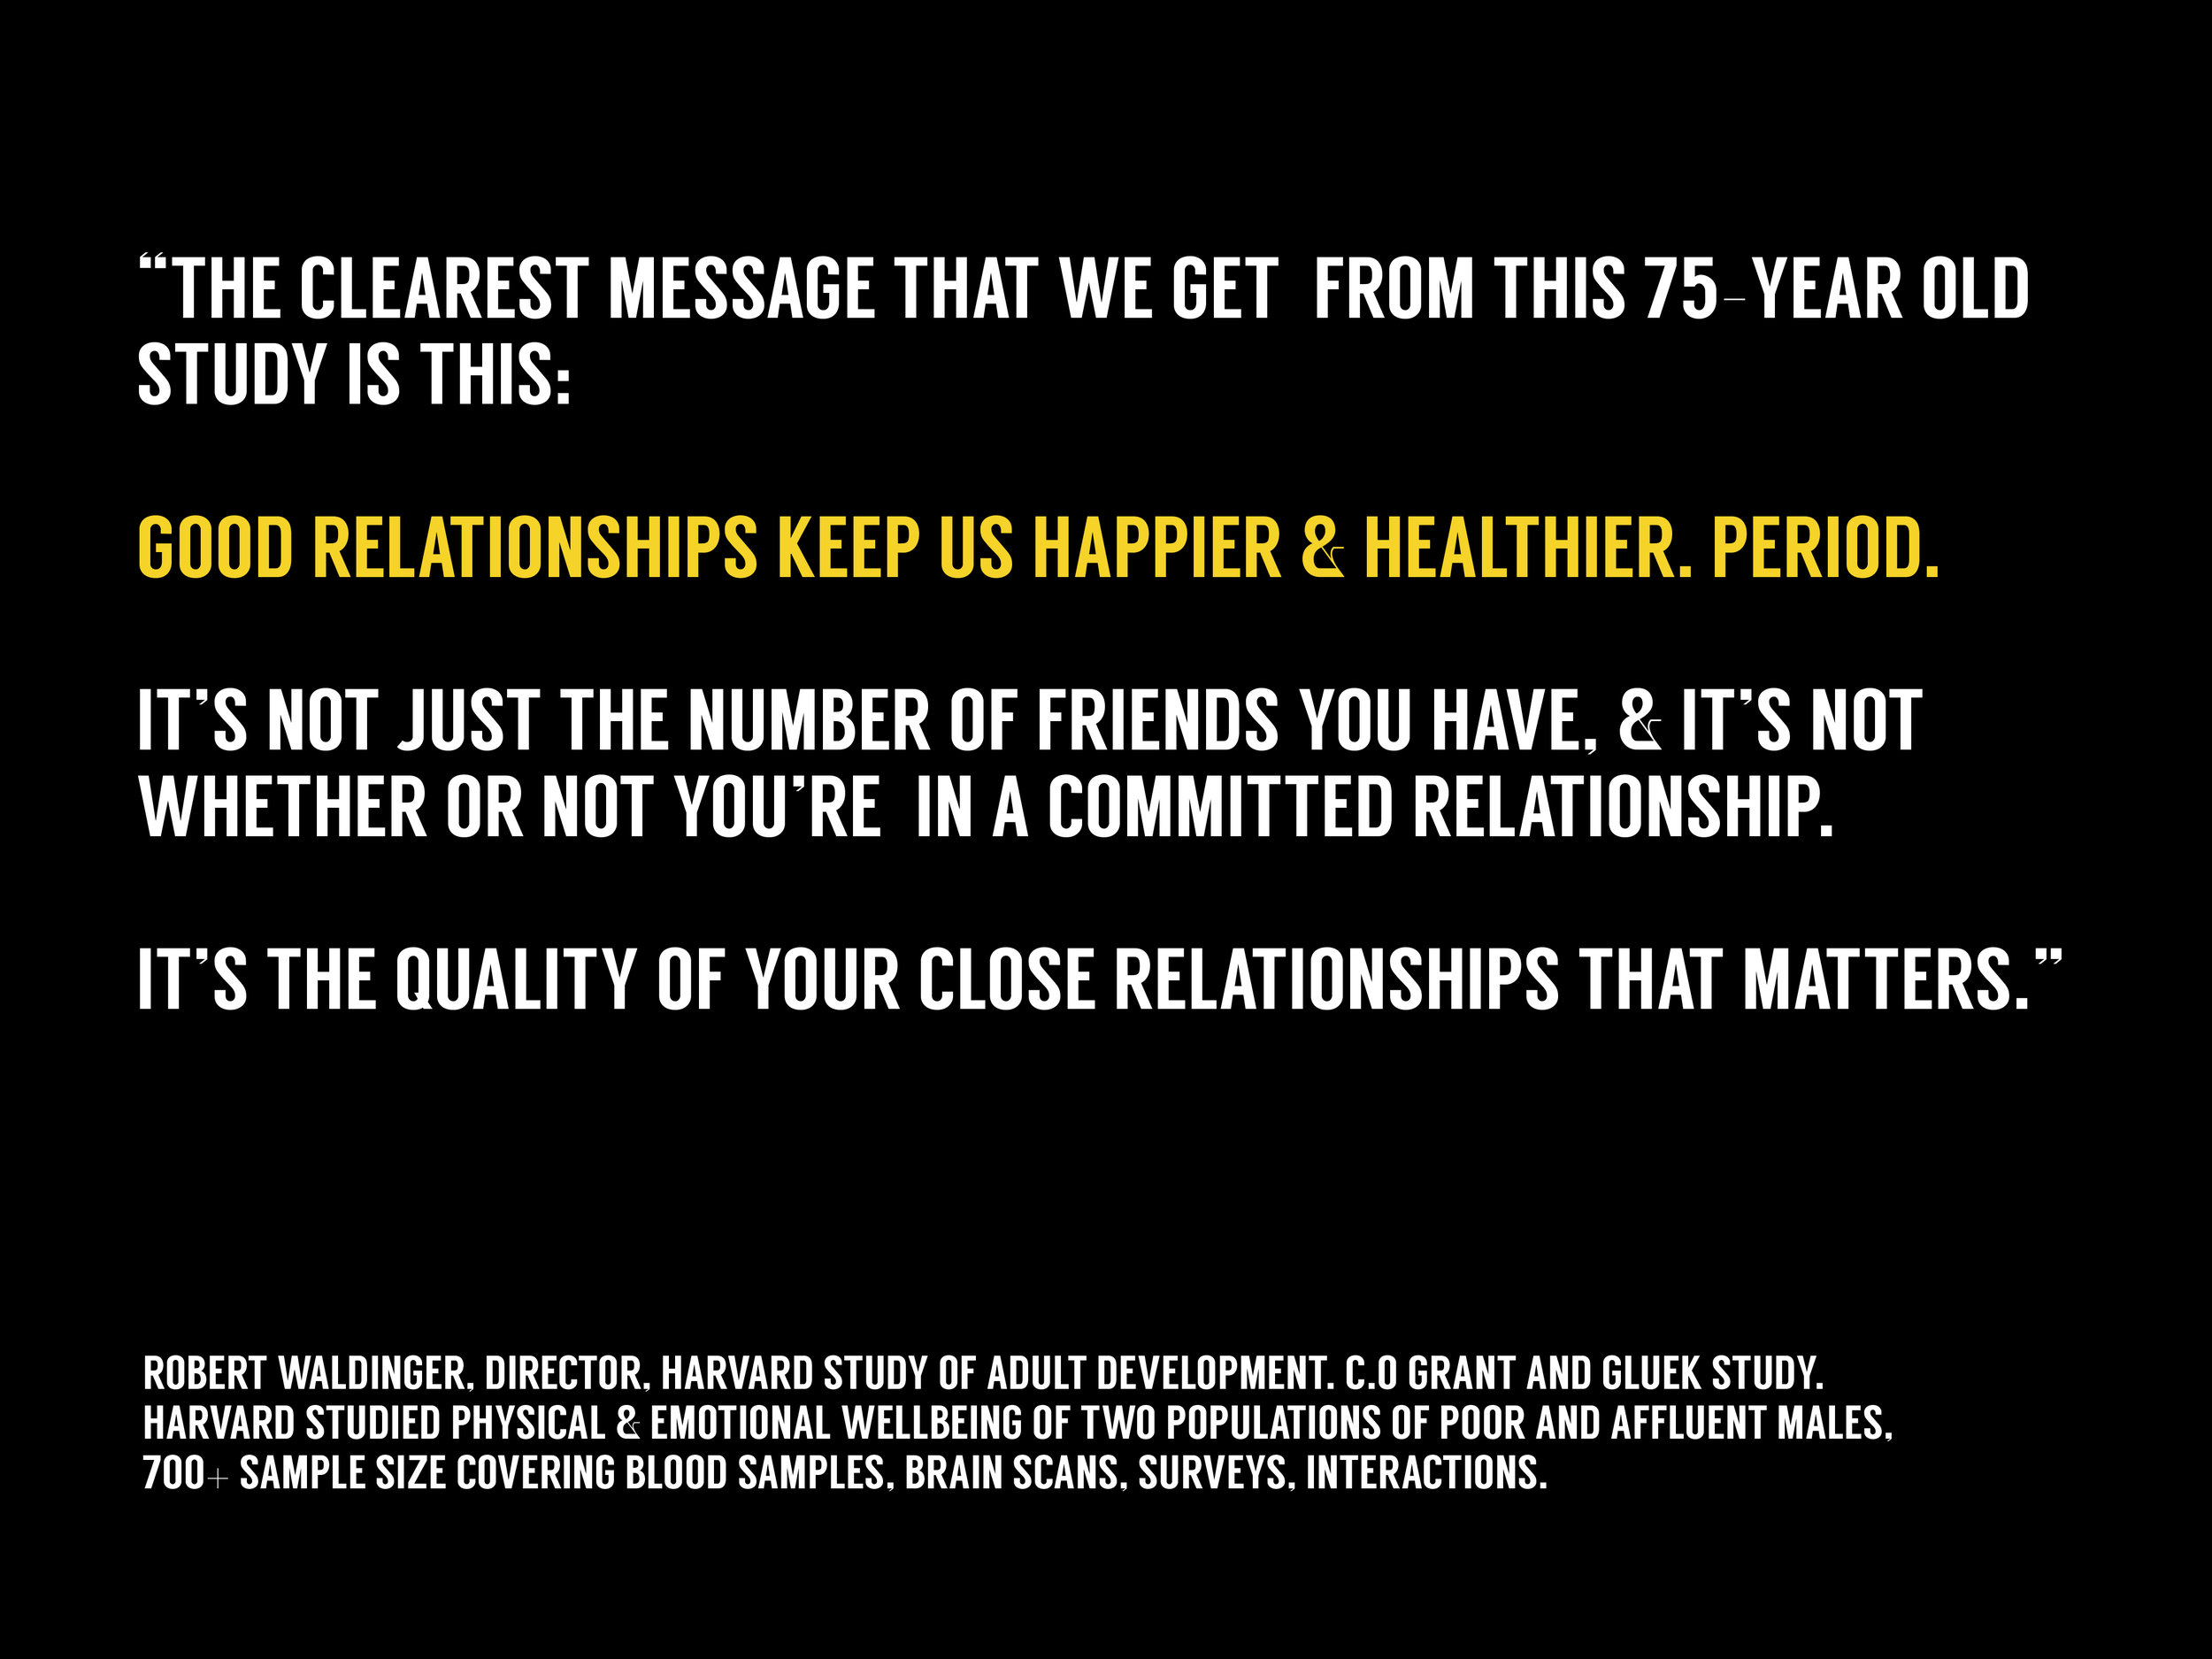 commercial relationship personal training melbourne 4.jpg